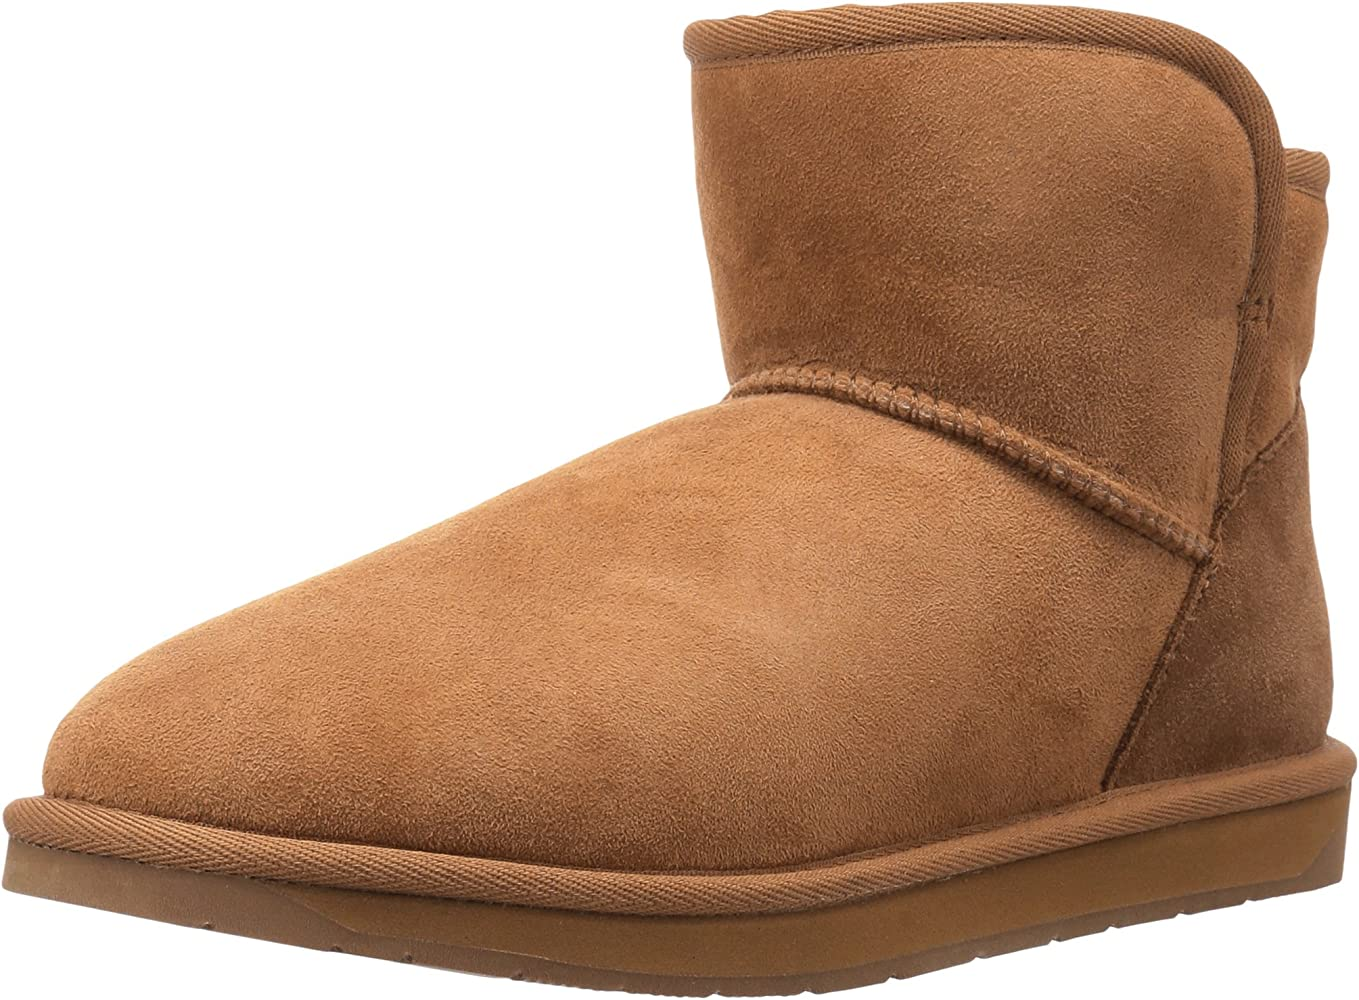 b2a82e97d559a Amazon Brand - 206 Collective Women's Bellevue Shearling Ankle Boot,  Chestnut, ...